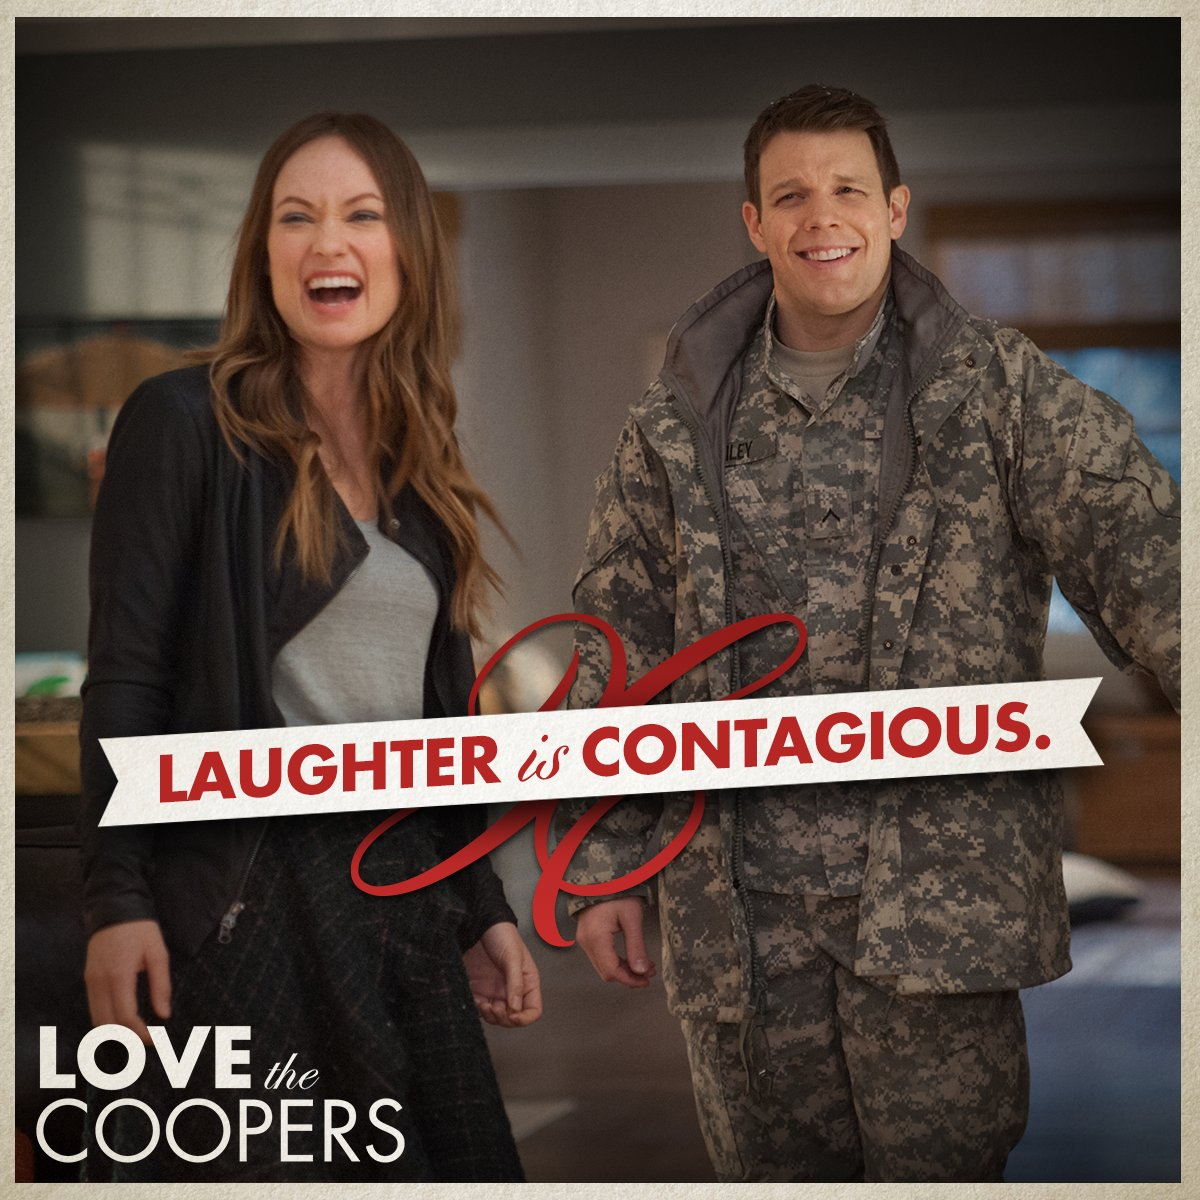 Catch the humor from those you love the most! #LoveTheCoopers https://t.co/yTVPpEYGcY